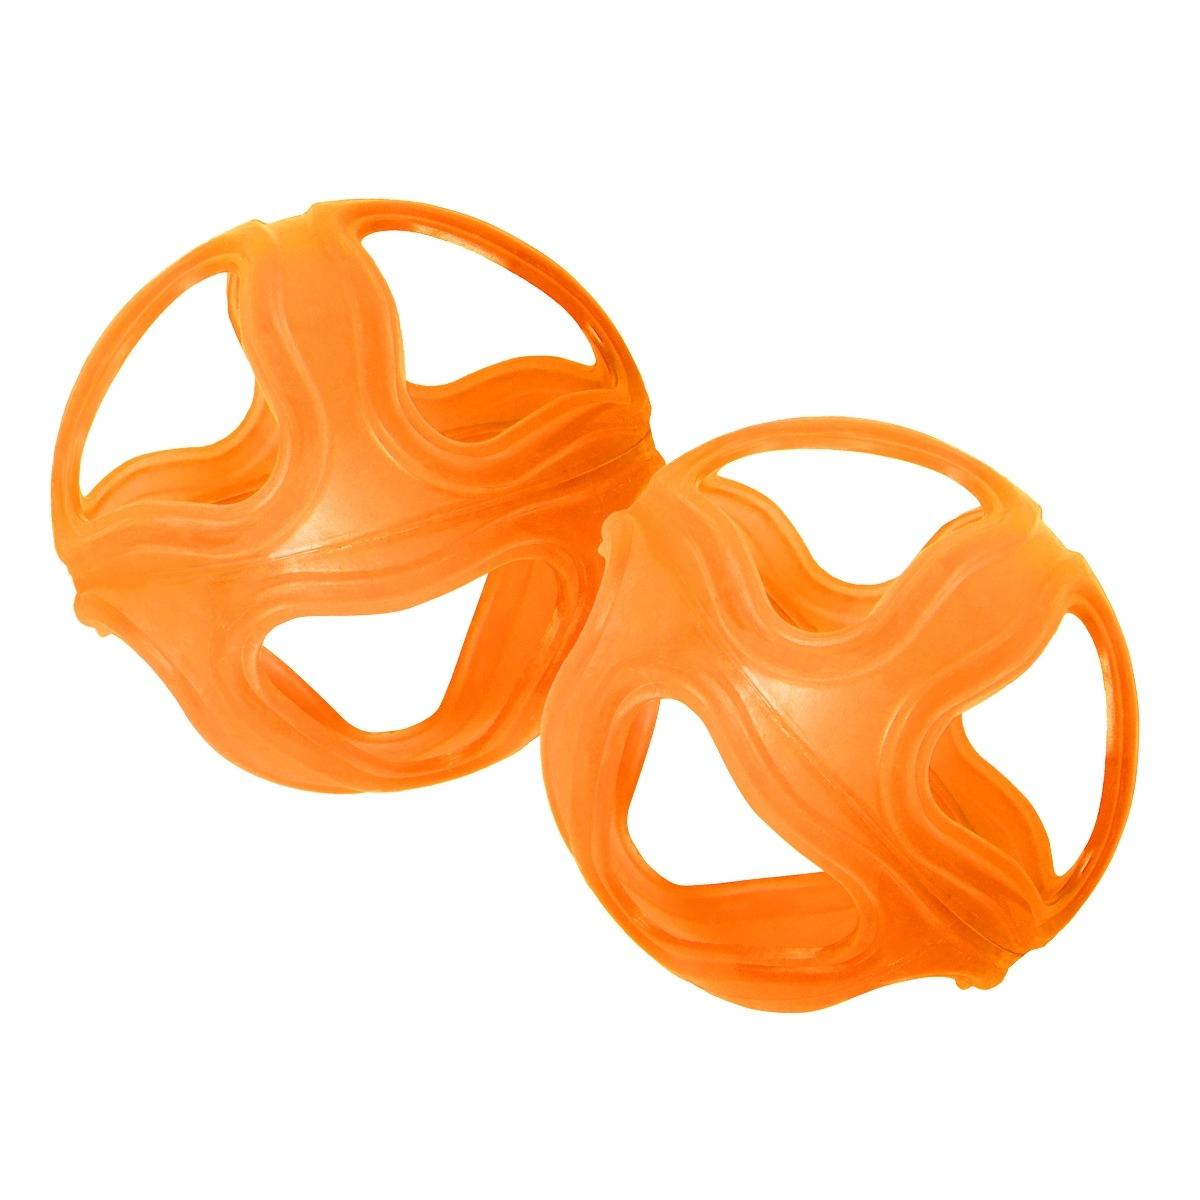 Outward Hound Woofle Ballz Dog Toy